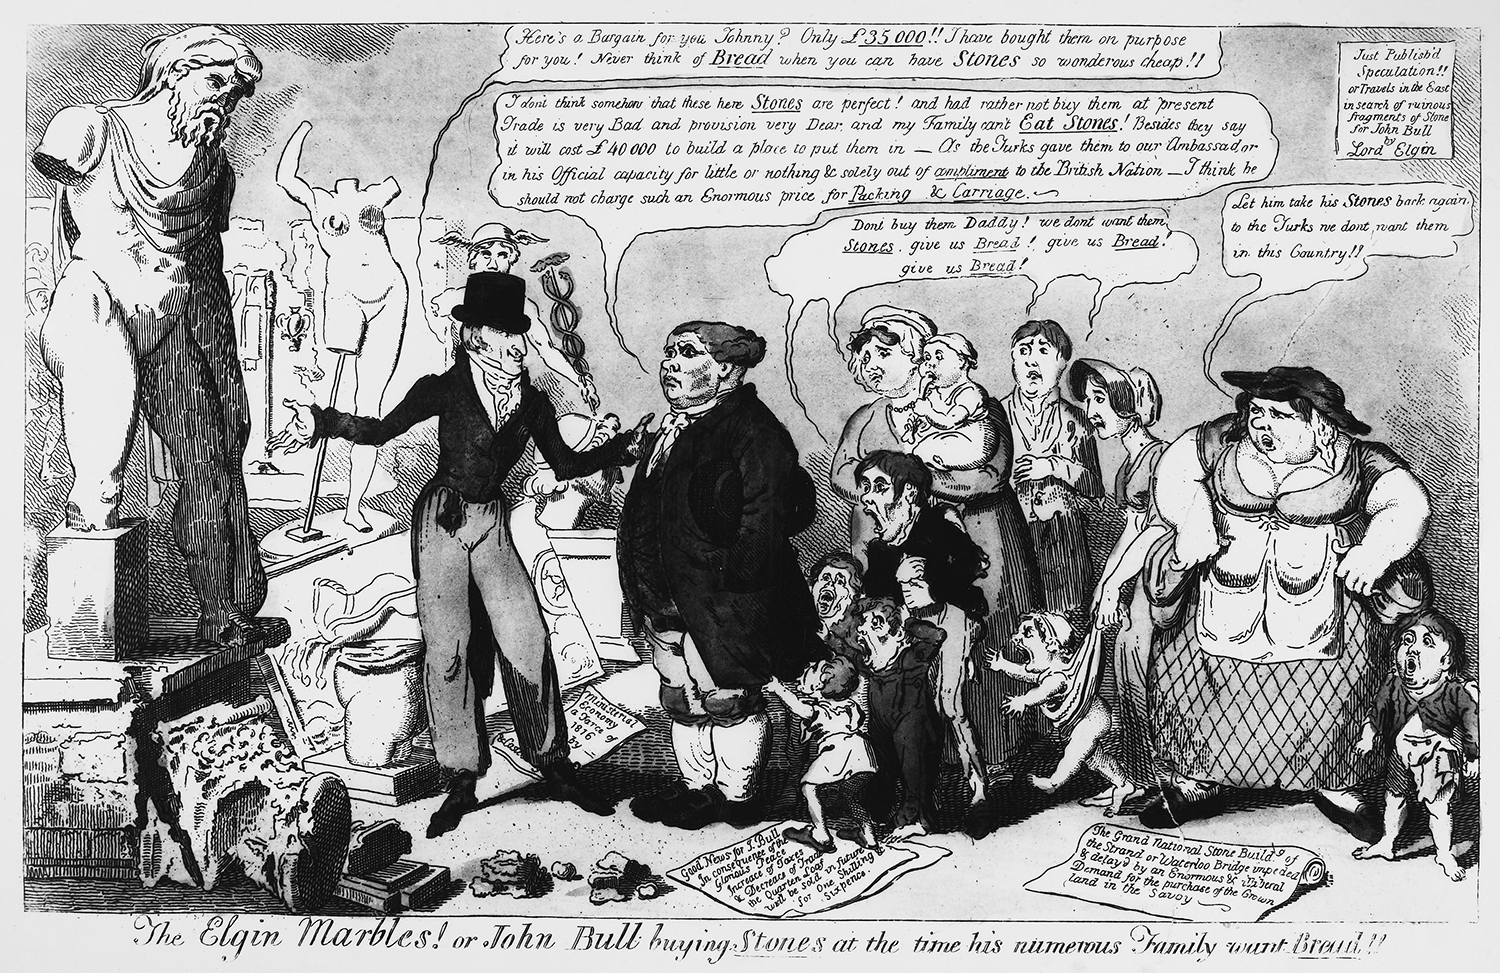 'The Elgin Marbles! or John Bull buying Stones at the time his numerous Family want Bread!!', George Cruikshank, 1816.